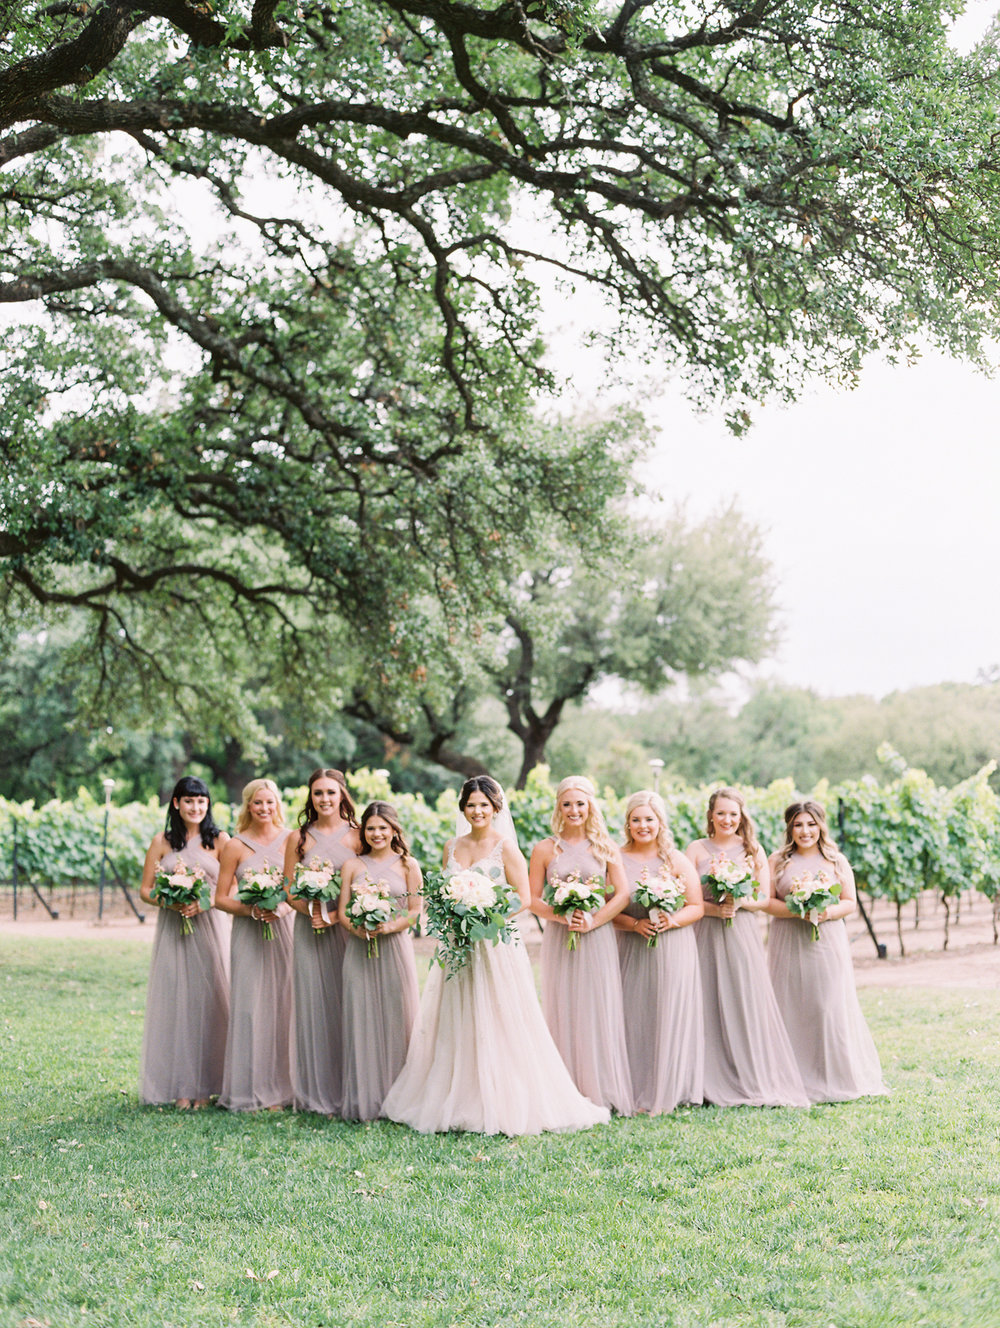 Elegant Spring Vineyard Wedding | Film Wedding Photographer | Austin Wedding Photographer | Romantic Taupe Bridesmaid Dresses, Flowy Bridal Bouquet | Britni Dean Photography // britnidean.com